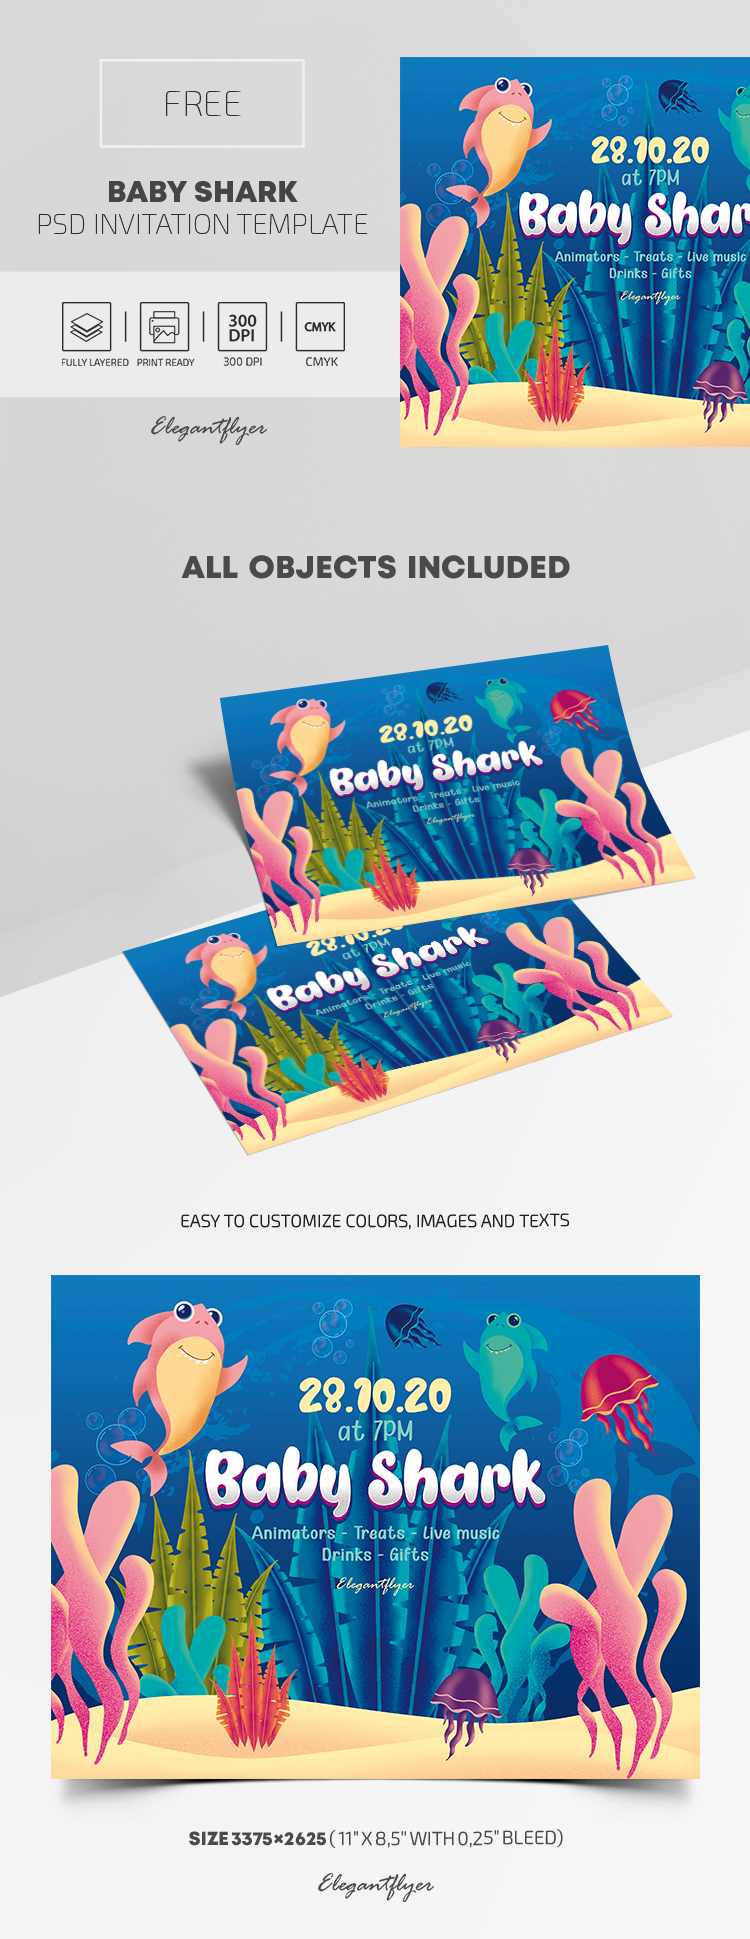 Free Baby Shark Invitation PSD Template